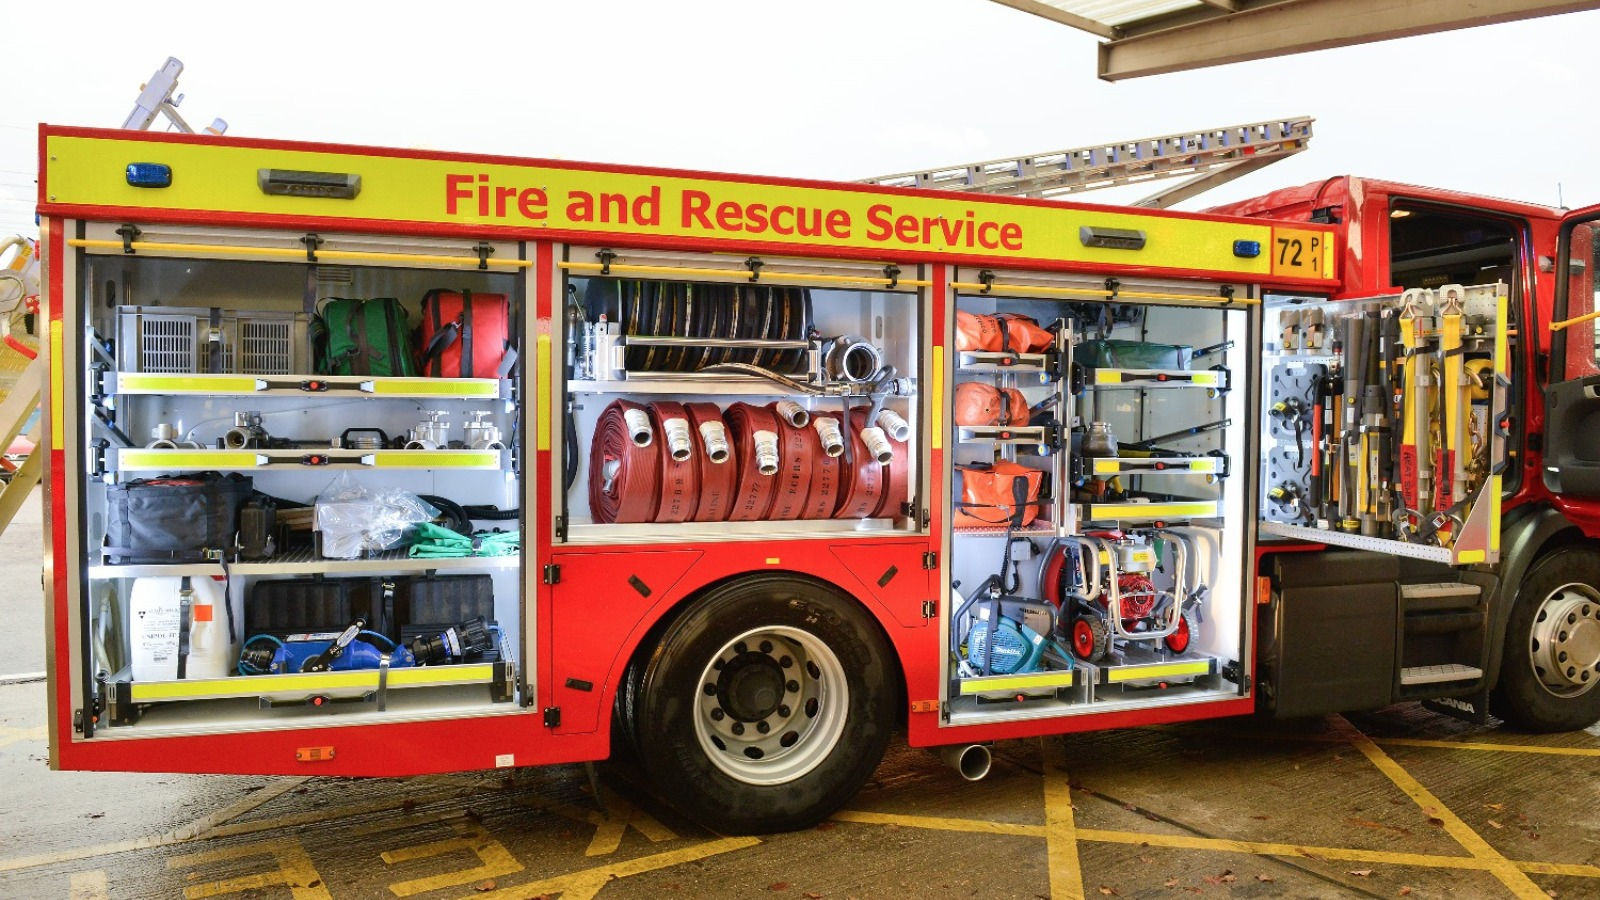 New Fleet Of Fire Engines Heading To Bedfordshire Anglia